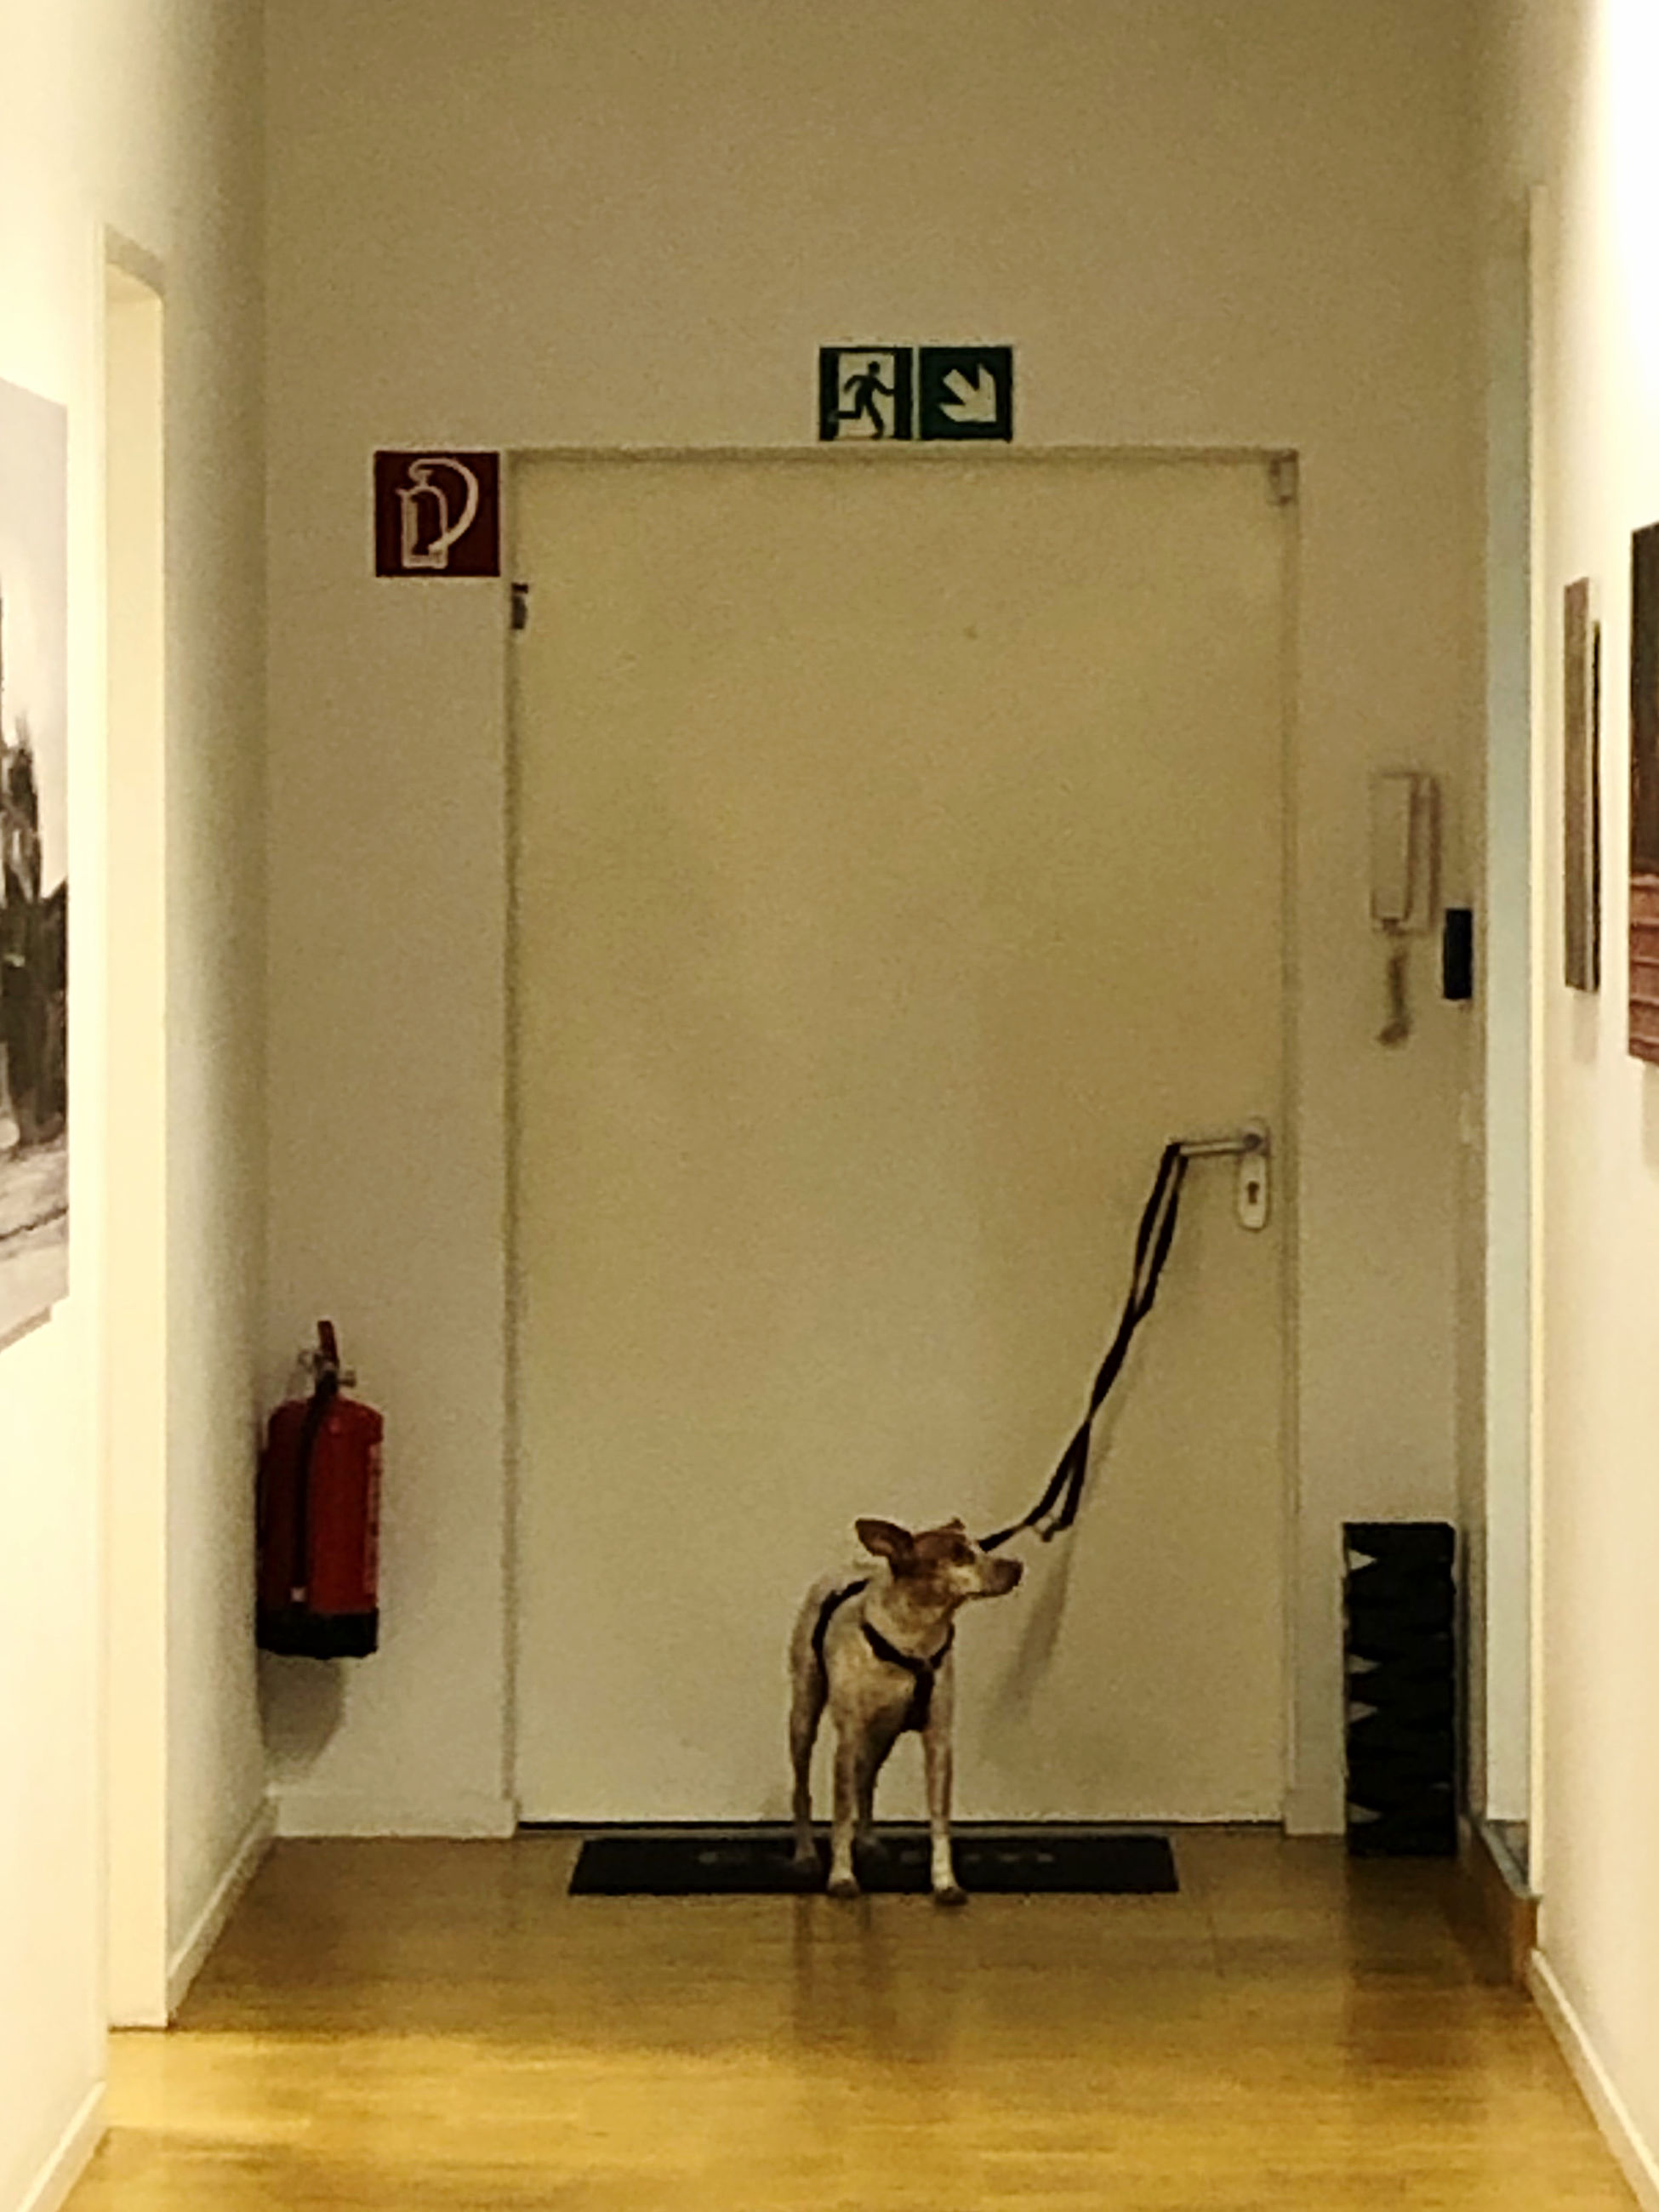 mammal, indoors, no people, one animal, representation, sculpture, entrance, domestic animals, art and craft, door, communication, domestic, human representation, wall - building feature, statue, architecture